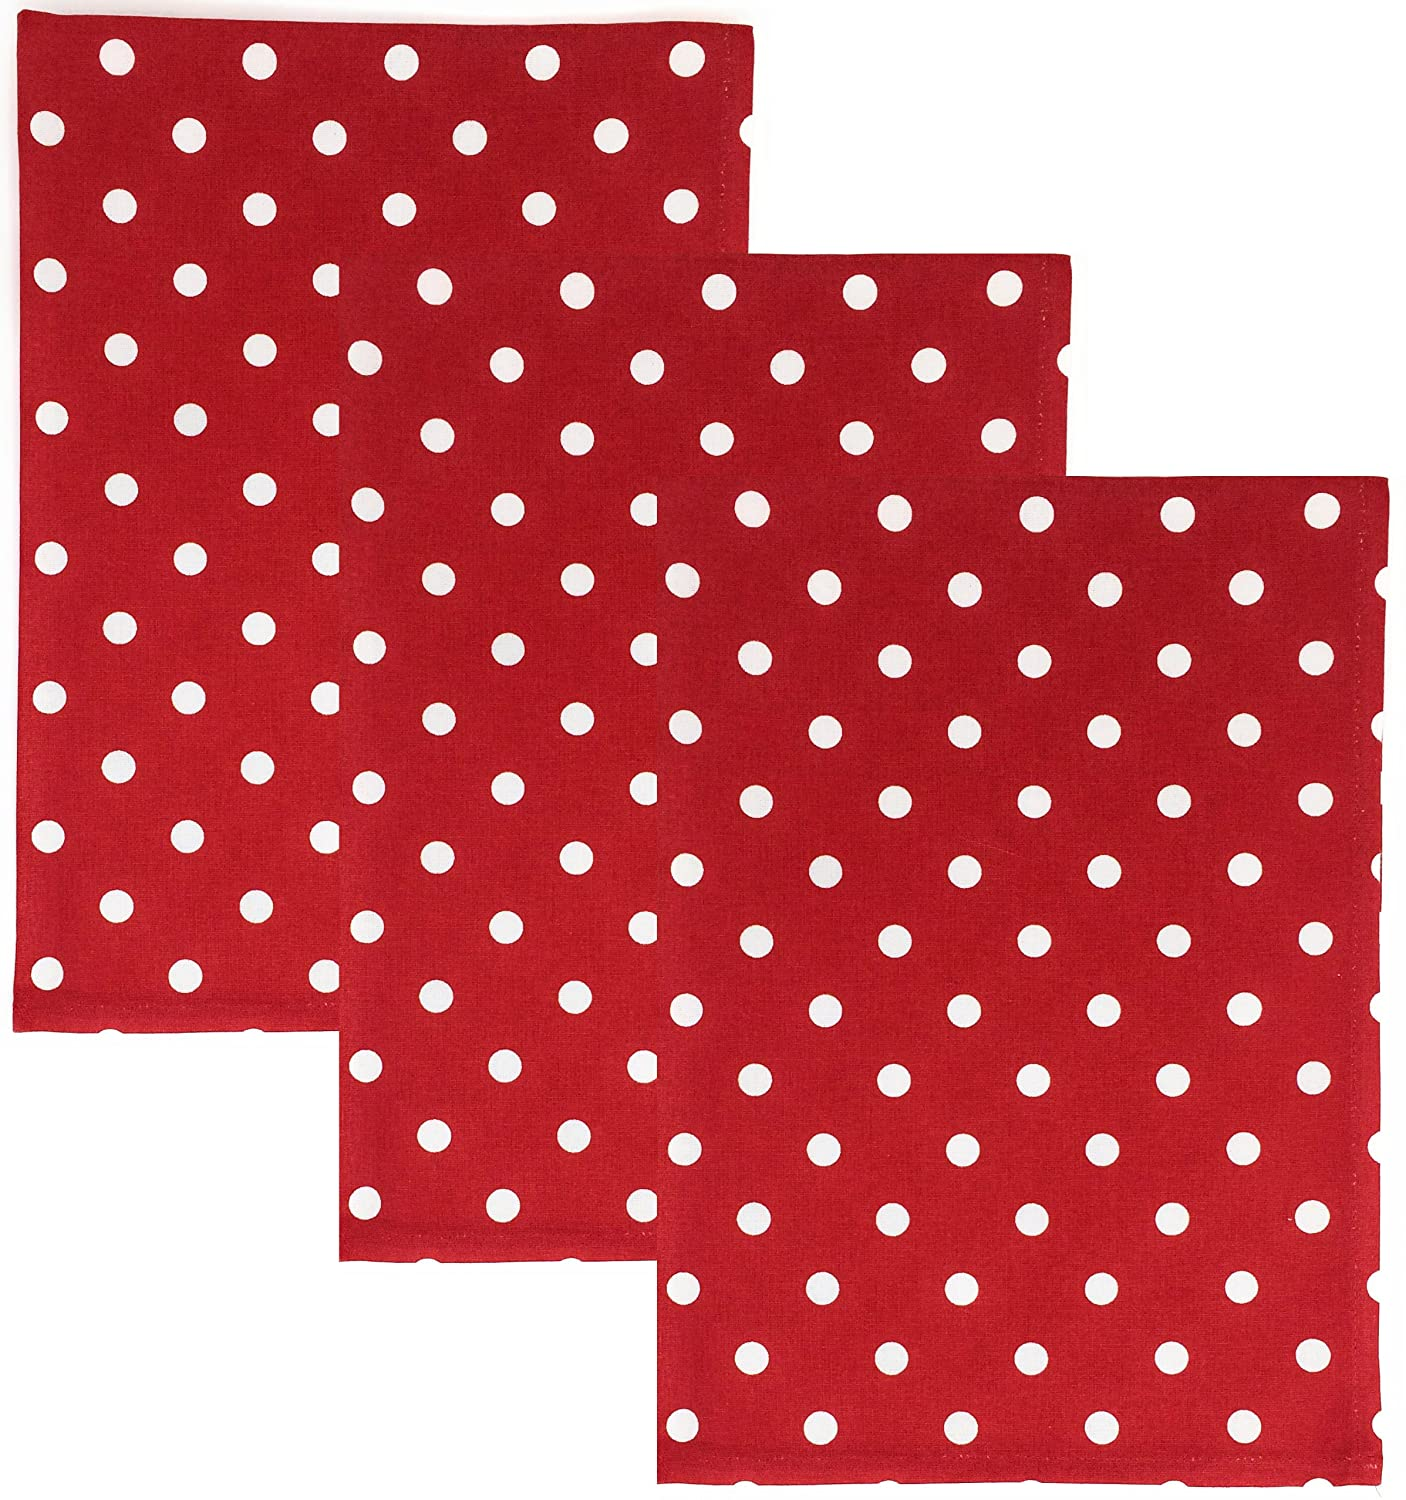 Dunroven House Polka Dot 100% Cotton Kitchen Towels, Set of 3 (Red)